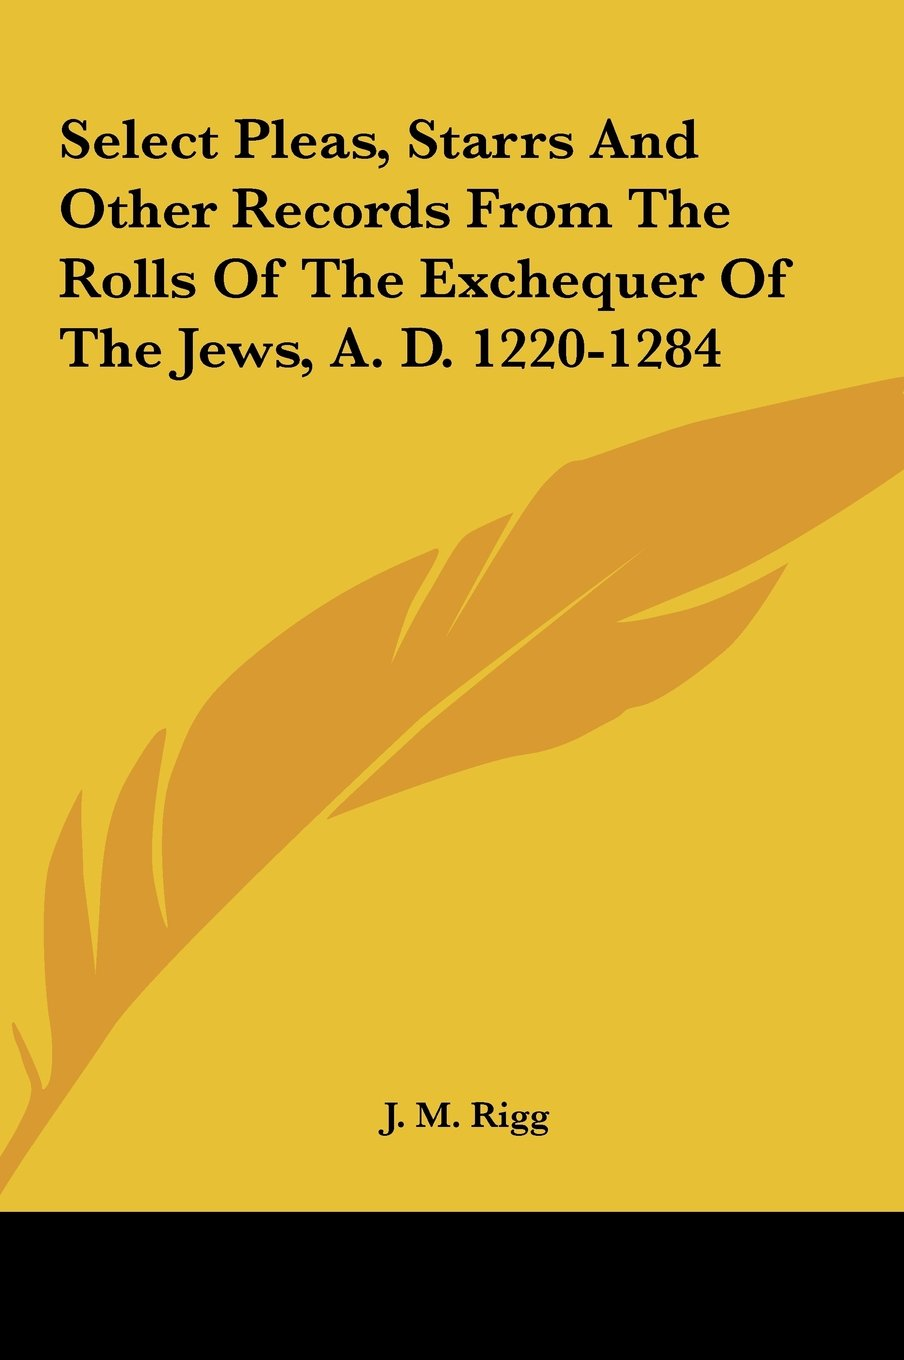 Select Pleas, Starrs And Other Records From The Rolls Of The Exchequer Of The Jews, A. D. 1220-1284 ebook